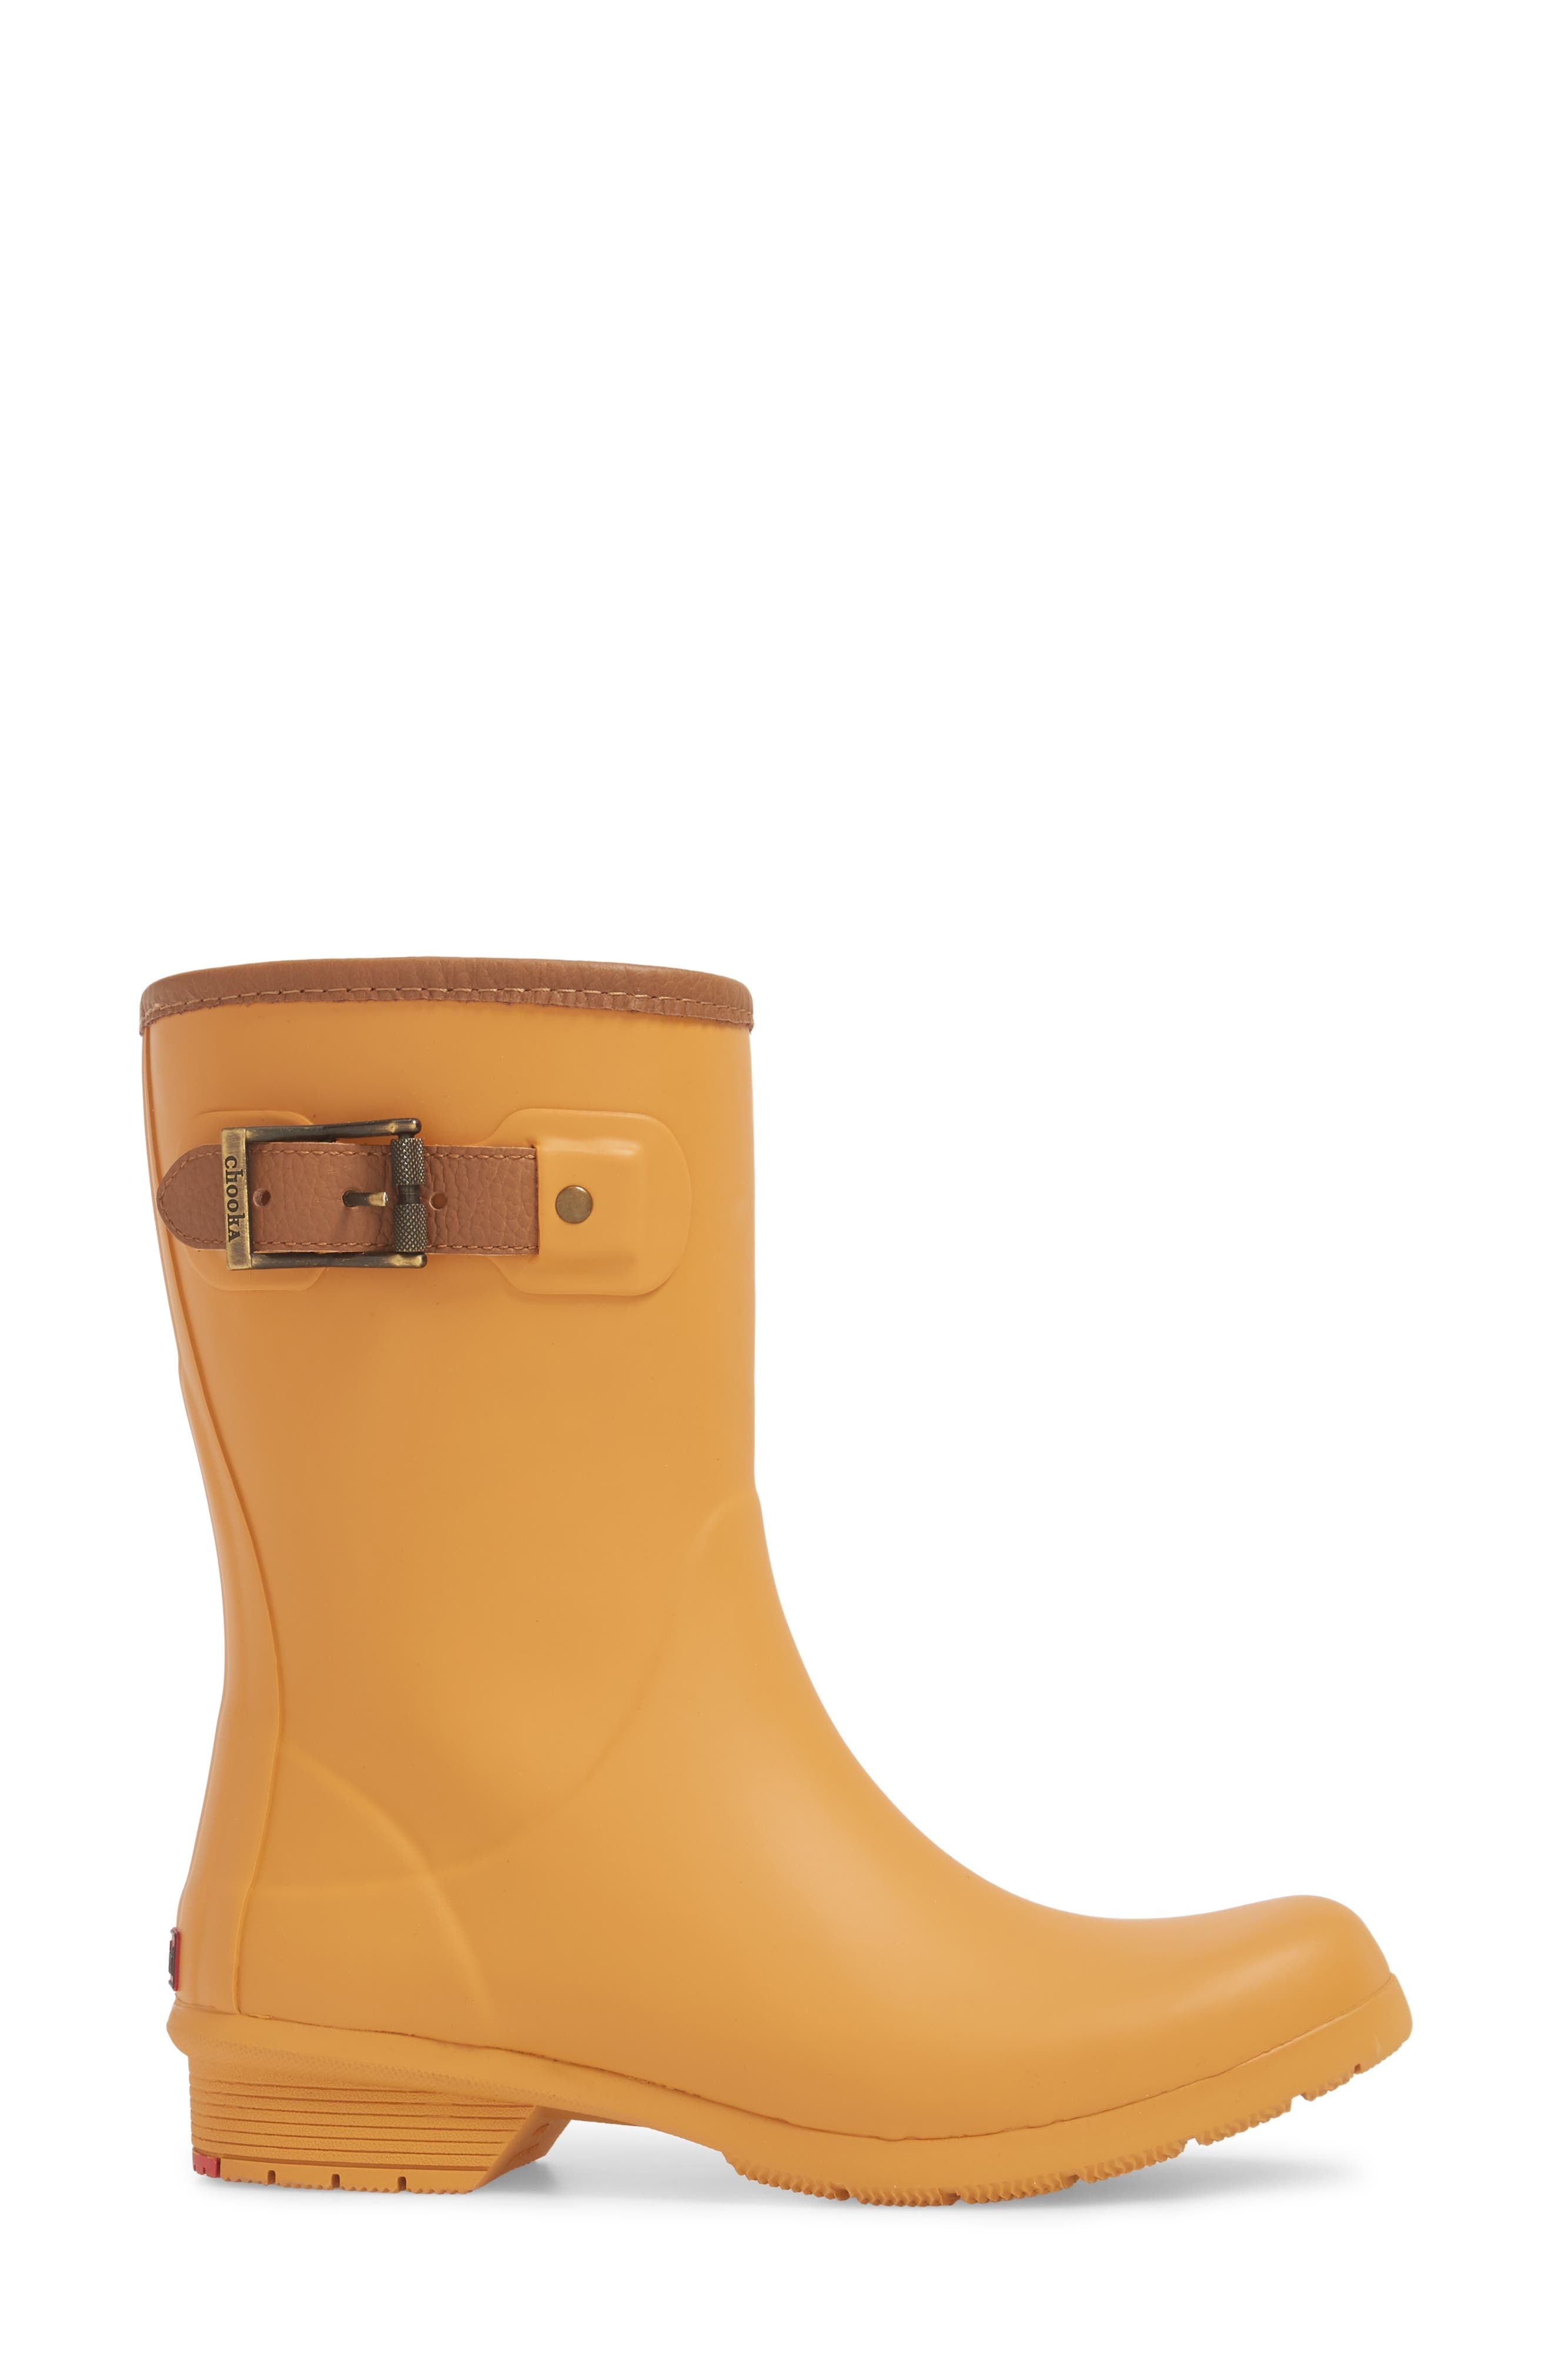 City Solid Mid Height Rain Boot,                             Alternate thumbnail 3, color,                             Saffron